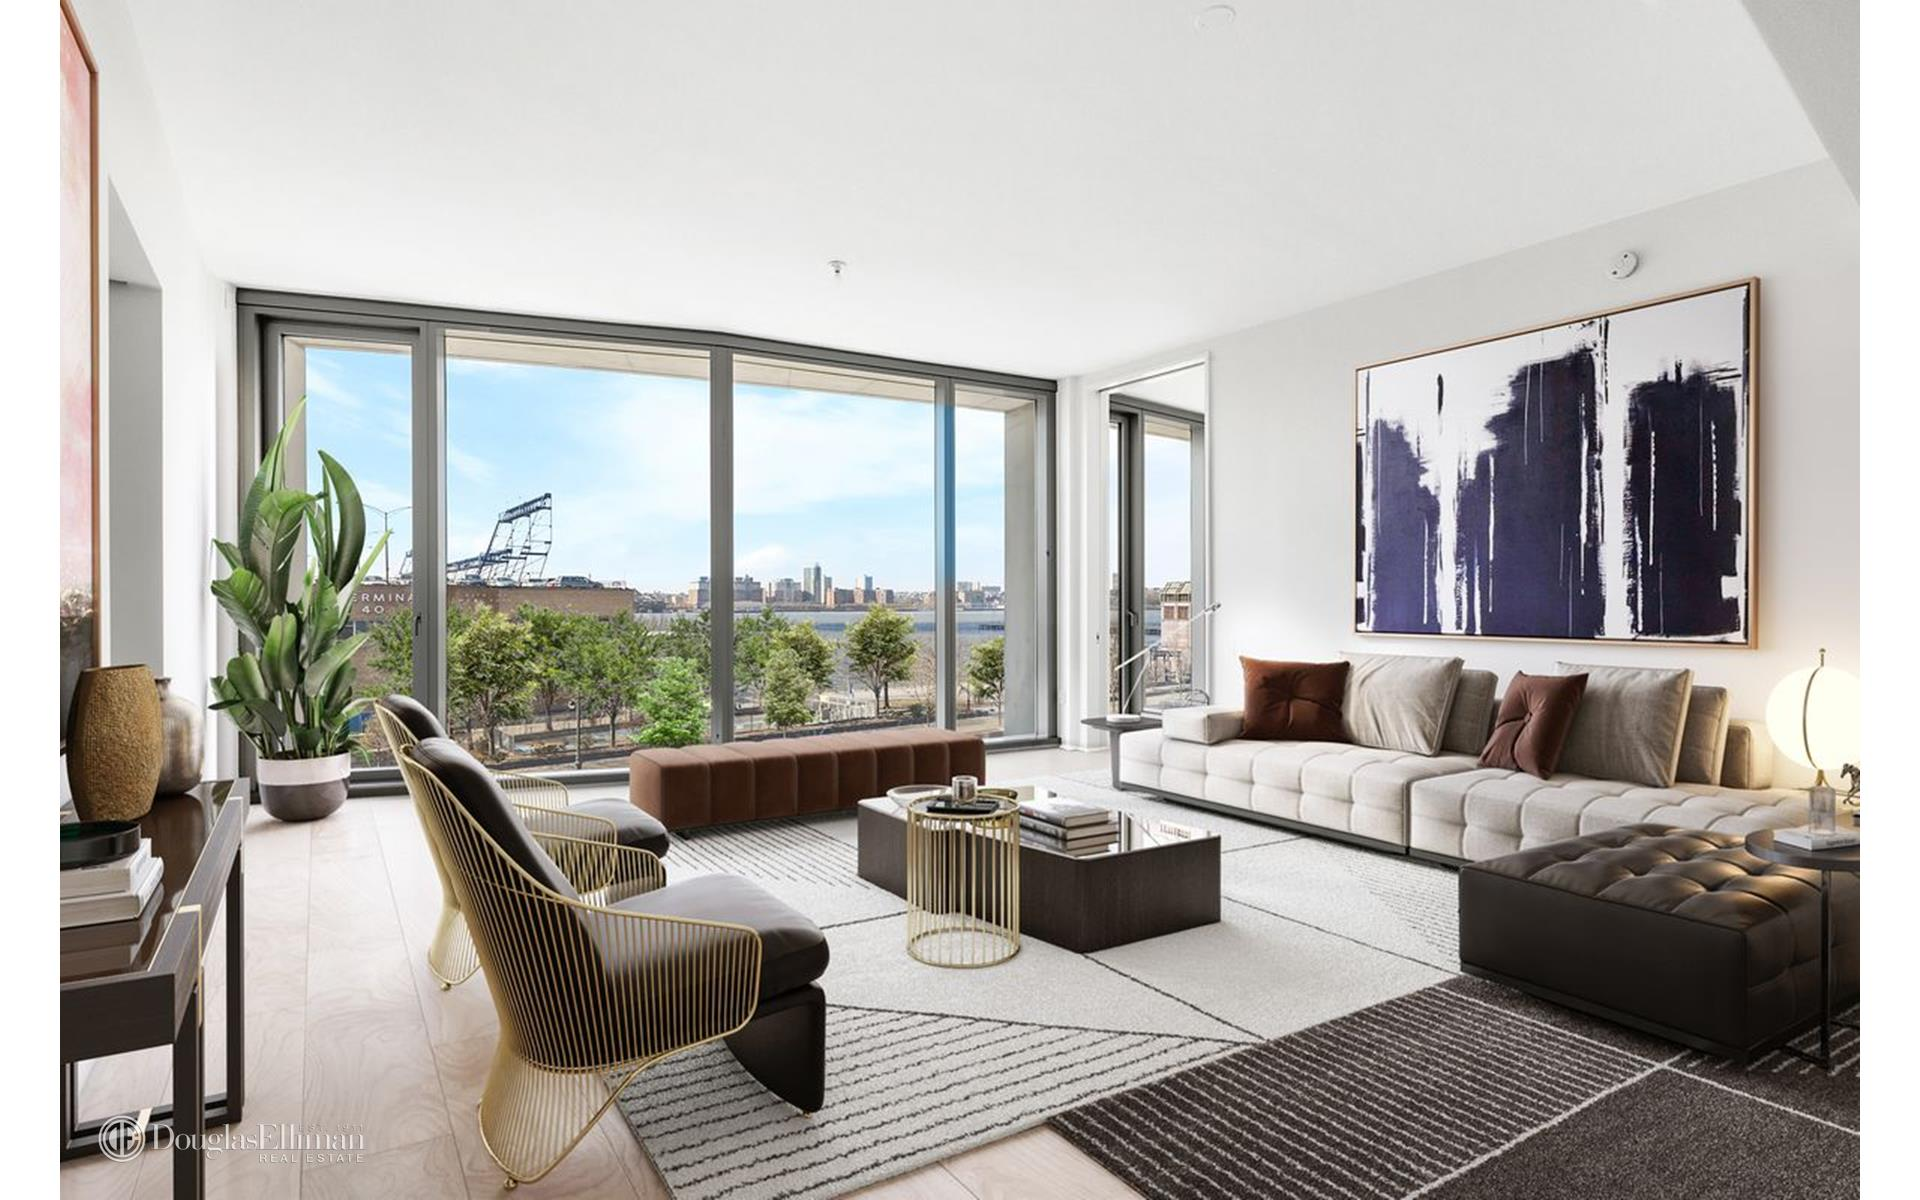 Rare opportunity to live in a Hudson Riverfront facing 2 bedroom/2.5 bathroom home in one of Downtowns most iconic, boutique condominiums in the heart of the West Village.Panoramic views over the Hudson will take your breath away as you walk into this expansive, 1,644 sf residence, envisioned and meticulously executed by renowned developer and hotelier, Ian Schrager and Pritzker Prize-winning architects Herzog & de Meuron.Apartment features include nearly 11' ceilings, hand selected Scandinavian Larch wood floors, floor-to-ceiling windows and state of the art appliances.The showpiece kitchen by Bulthaup, features Sivec marble countertops and backsplash, fully integrated Sub-zero refrigerator, Miele dishwasher, Scandinavian Larch wood cabinets, Gaggenau cooktop, Wolf steam oven, Sub-Zero wine refrigerator and an integrated Miele coffee/espresso machine.The Master Bedroom suite boasts an oversized walk-in closet and a stunning windowed en-suite bathroom featuring a Sivec marble double vanity, wet room with an oversized shower, Kaldewei soaking tub and radiant floor heating.The secondary bedroom offers serene eastern views overlooking the private garden designed by Madison Cox and an en-suite bathroom with travertine stone walls and shower.The breath taking powder room is clad in floor-to-ceiling Scandinavian Larch wood and has a custom designed floating Sivec marble vanity.Additionally, South 5C features custom shades throughout, custom triple pane curtain wall with UVB/UVA protected glass and a private storage bin.160 Leroy St. offers an impressive amenity package including concierge services, a stunning cobblestone porte-cochere, landscaped courtyard by Madison Cox, spa, 70-foot pool, fitness center, yoga/pilates studio, steam room, sauna, massage room, a lounge with a catering kitchen, and children's play room.Call today for additional information/private tour of this extraordinary home at 160 Leroy!*Please note that the furnished pictures are virtually staged